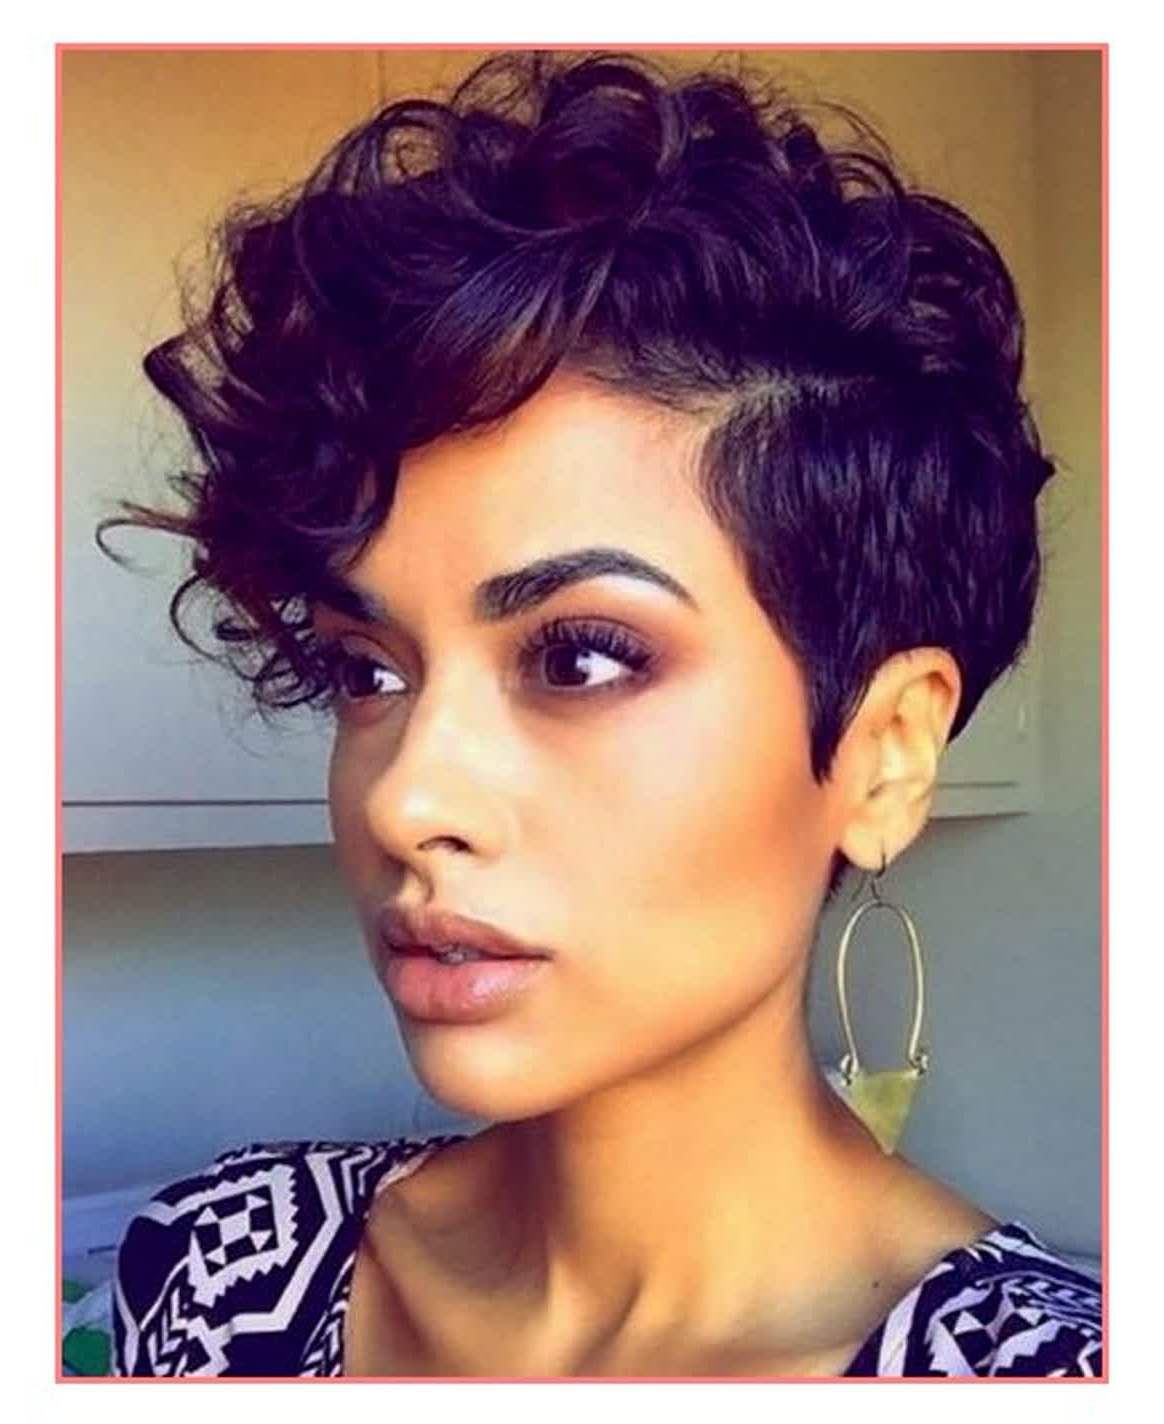 18 Trend Cute Short Haircuts For Black Women ~ Louis Palace Within Cute Short Hairstyles For Black Women (View 1 of 25)